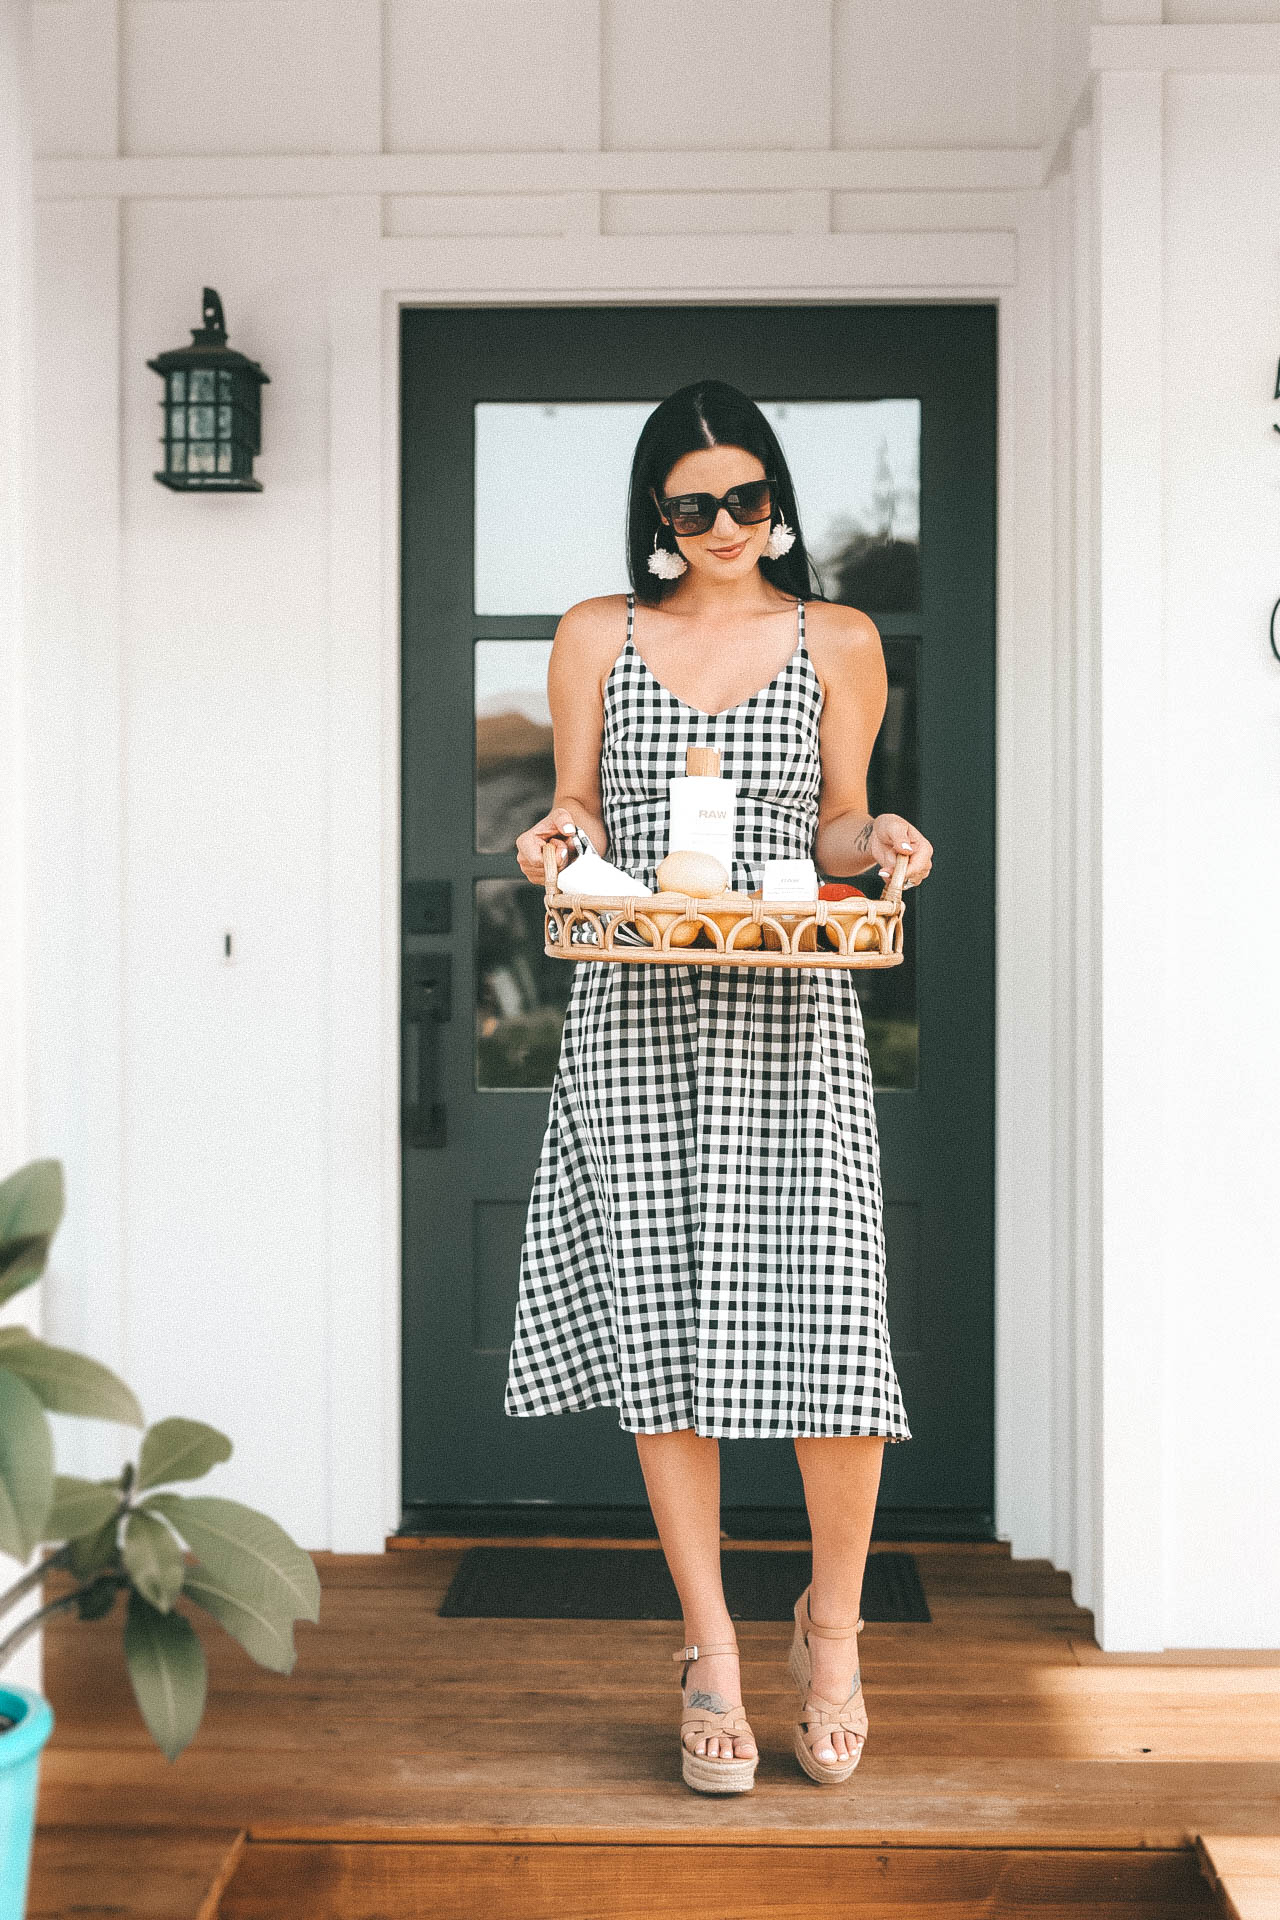 #style #fashion #outfits #summerfashion #summerstyle #mididress #gingham #dtkaustin - {Why I Have Used Raw Sugar Living for 10+ Years + GIVEAWAY} featured by popular Austin beauty blogger Dressed to Kill